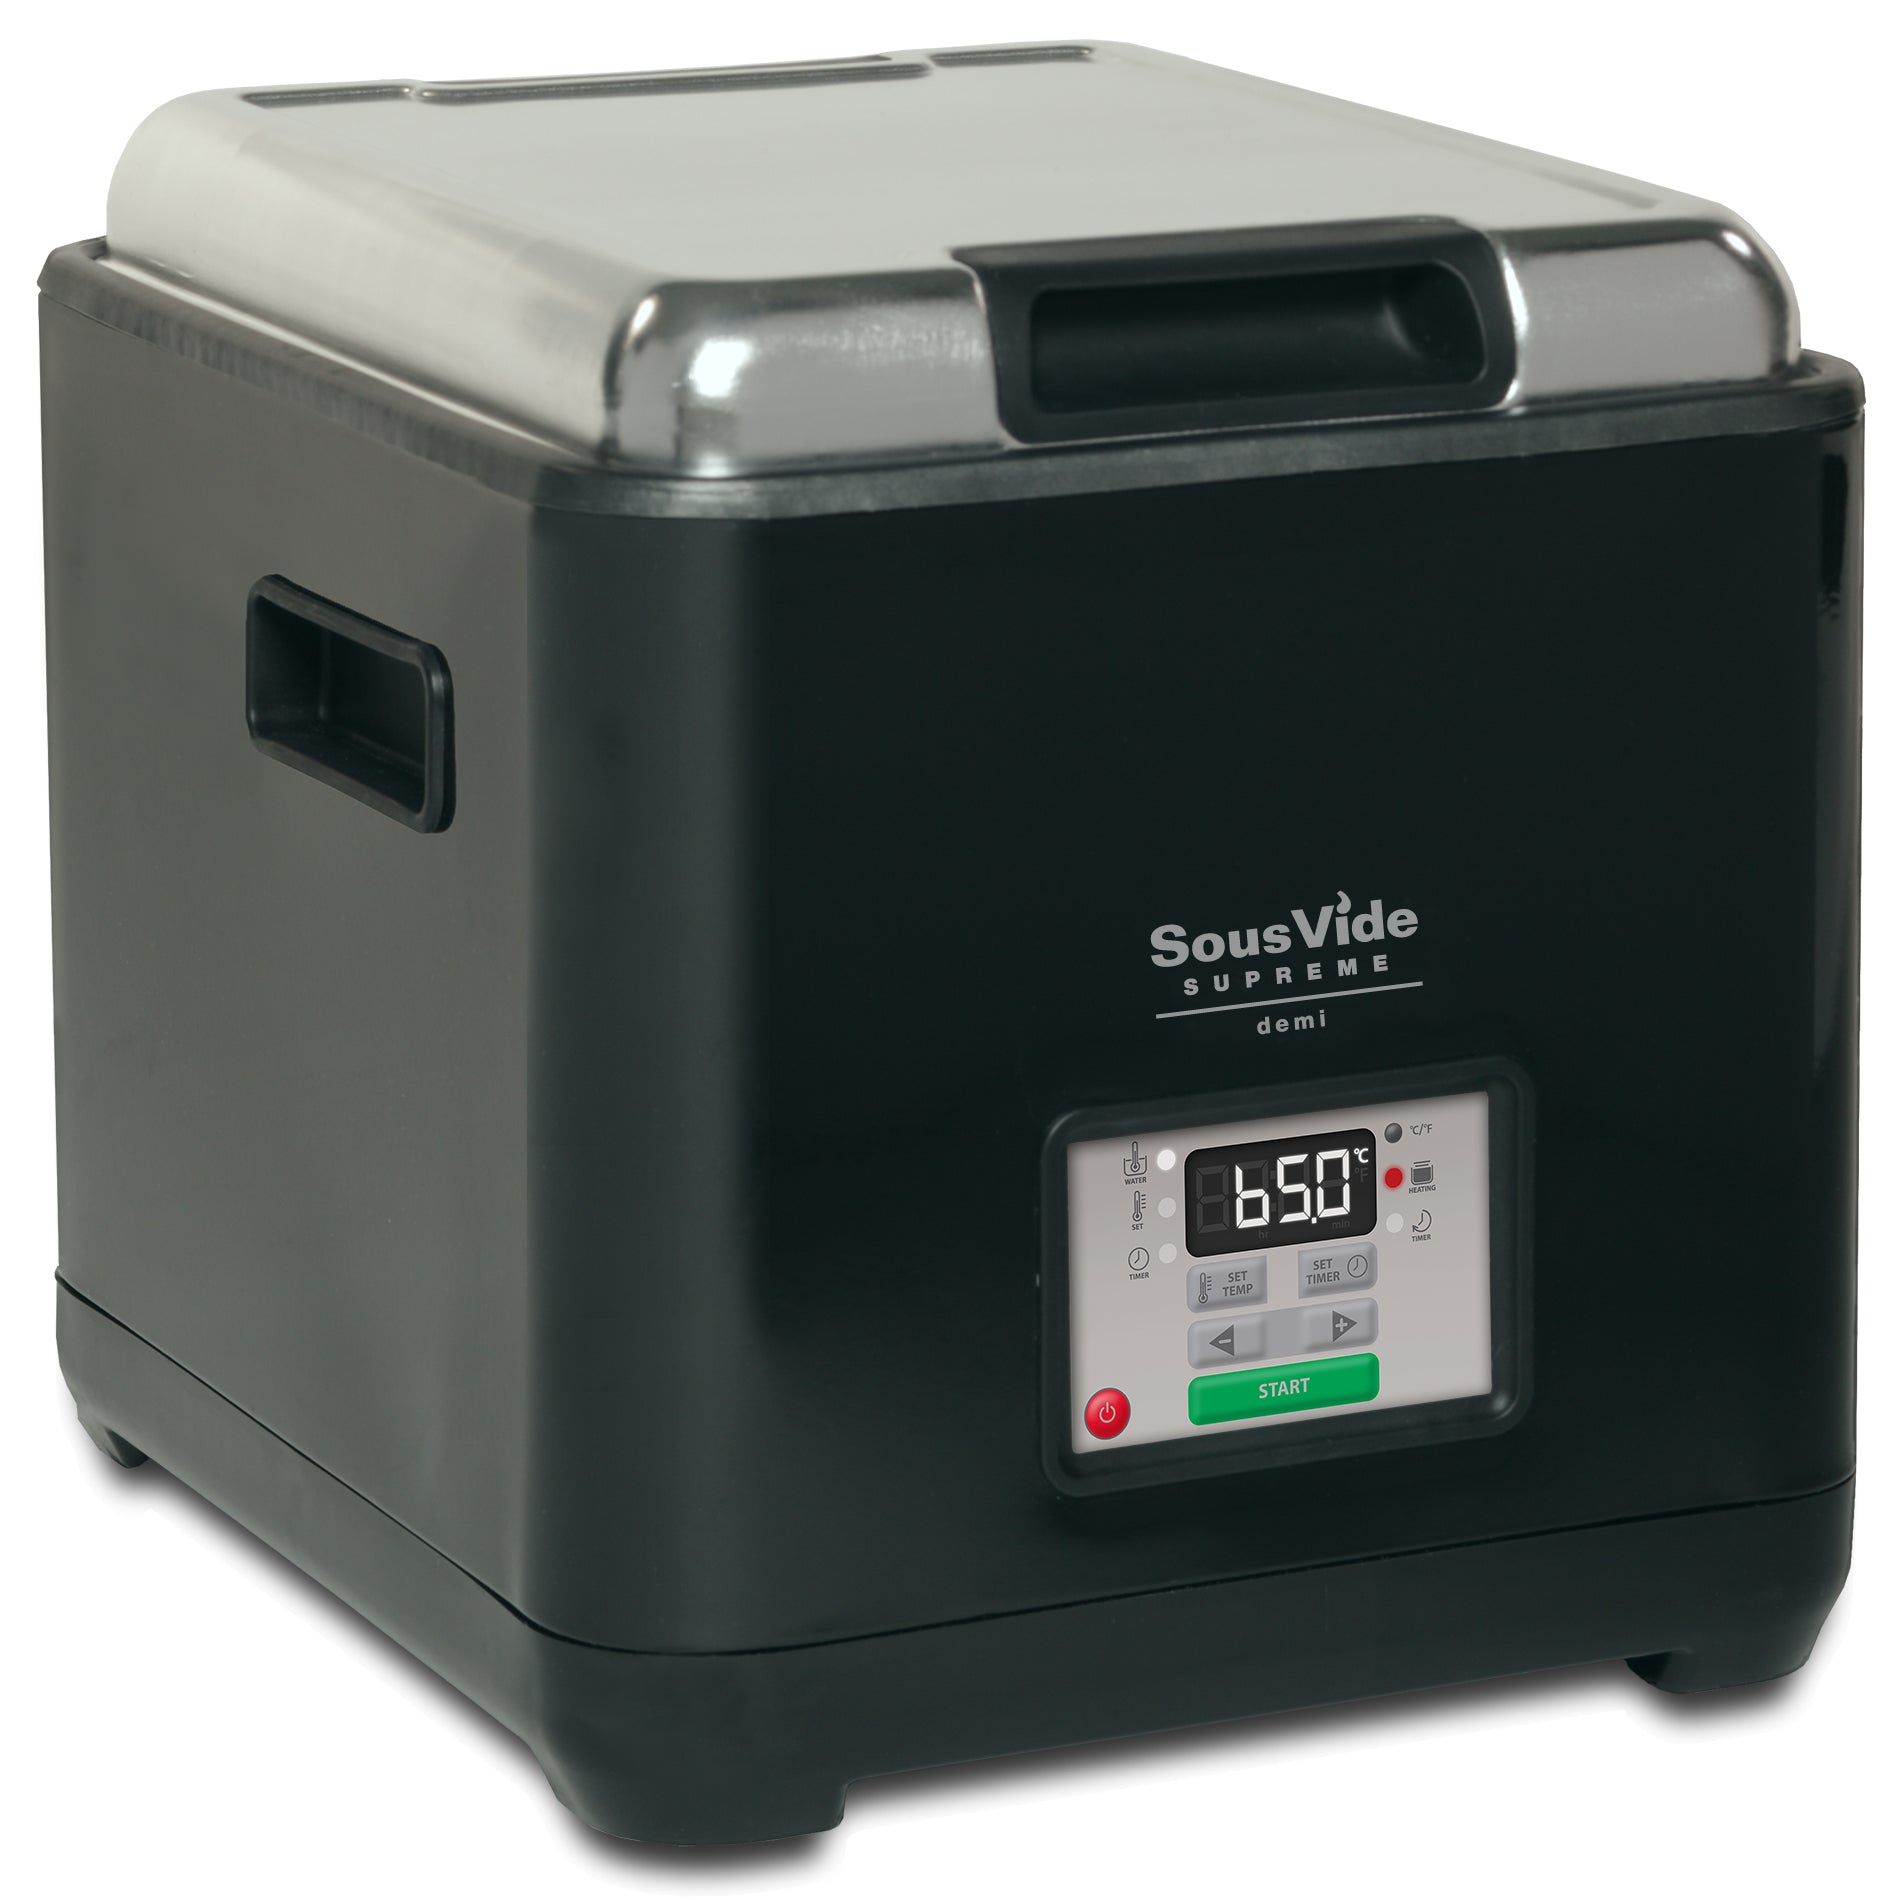 Sousvide Supreme Demi front left view